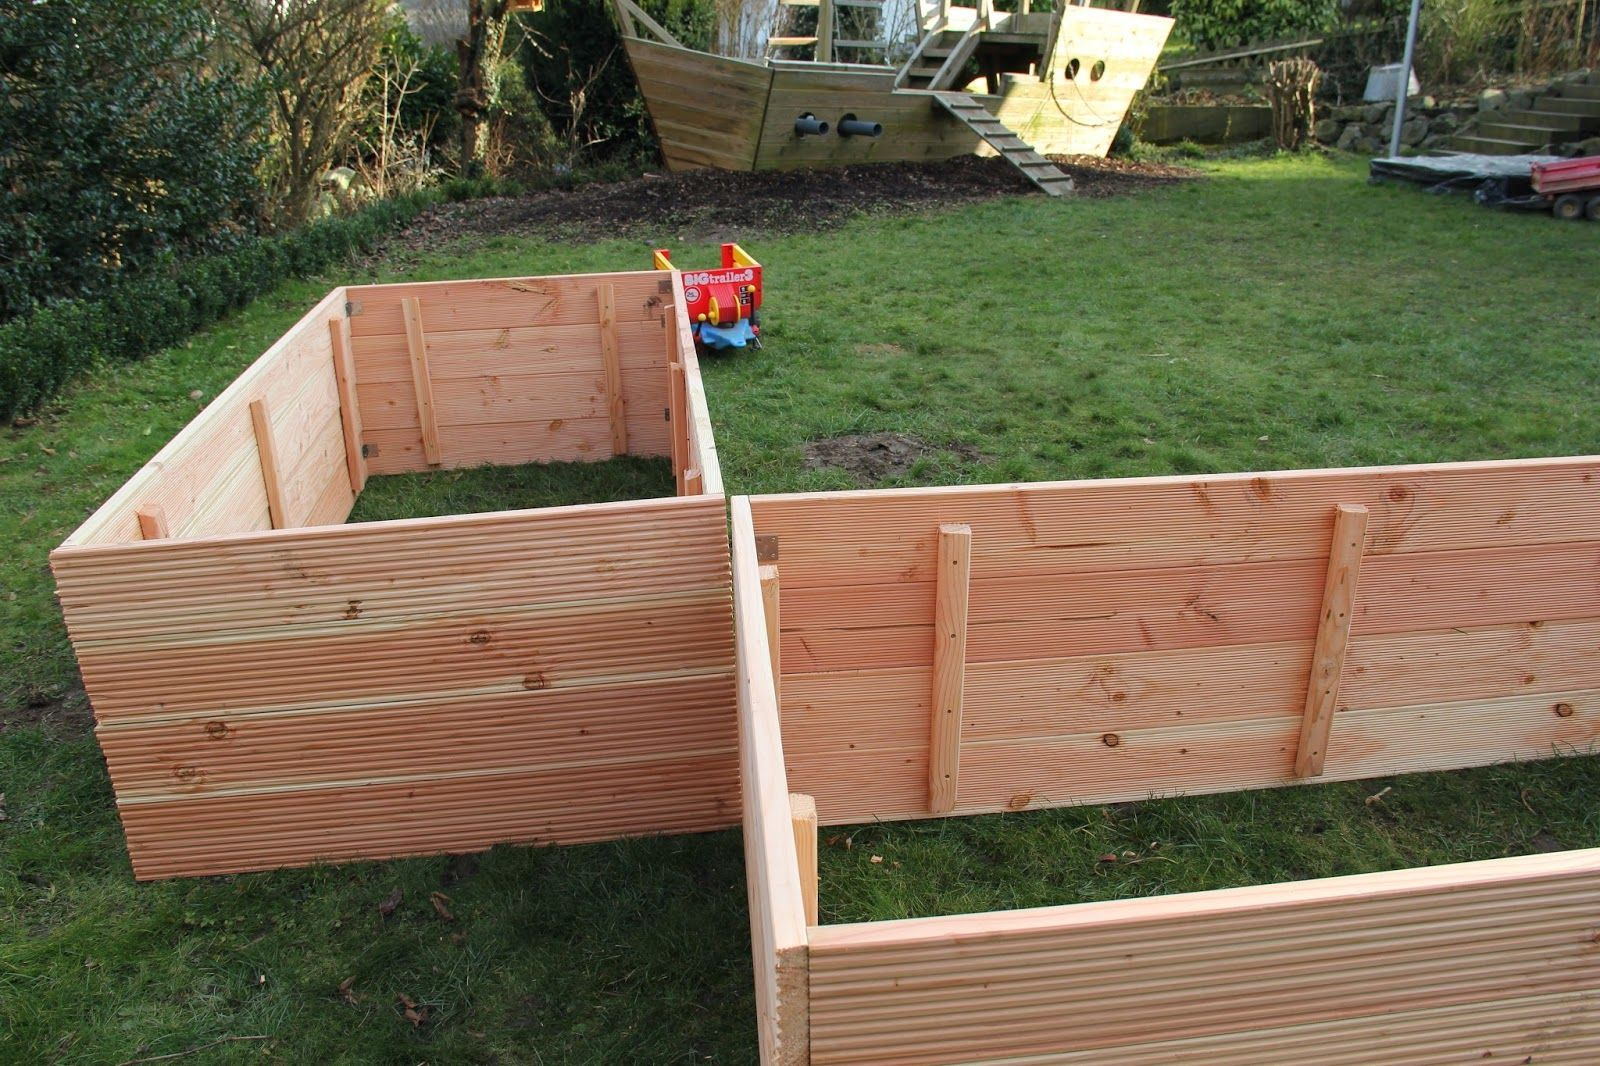 hochbeet bauanleitung raised bed building instructions t. Black Bedroom Furniture Sets. Home Design Ideas